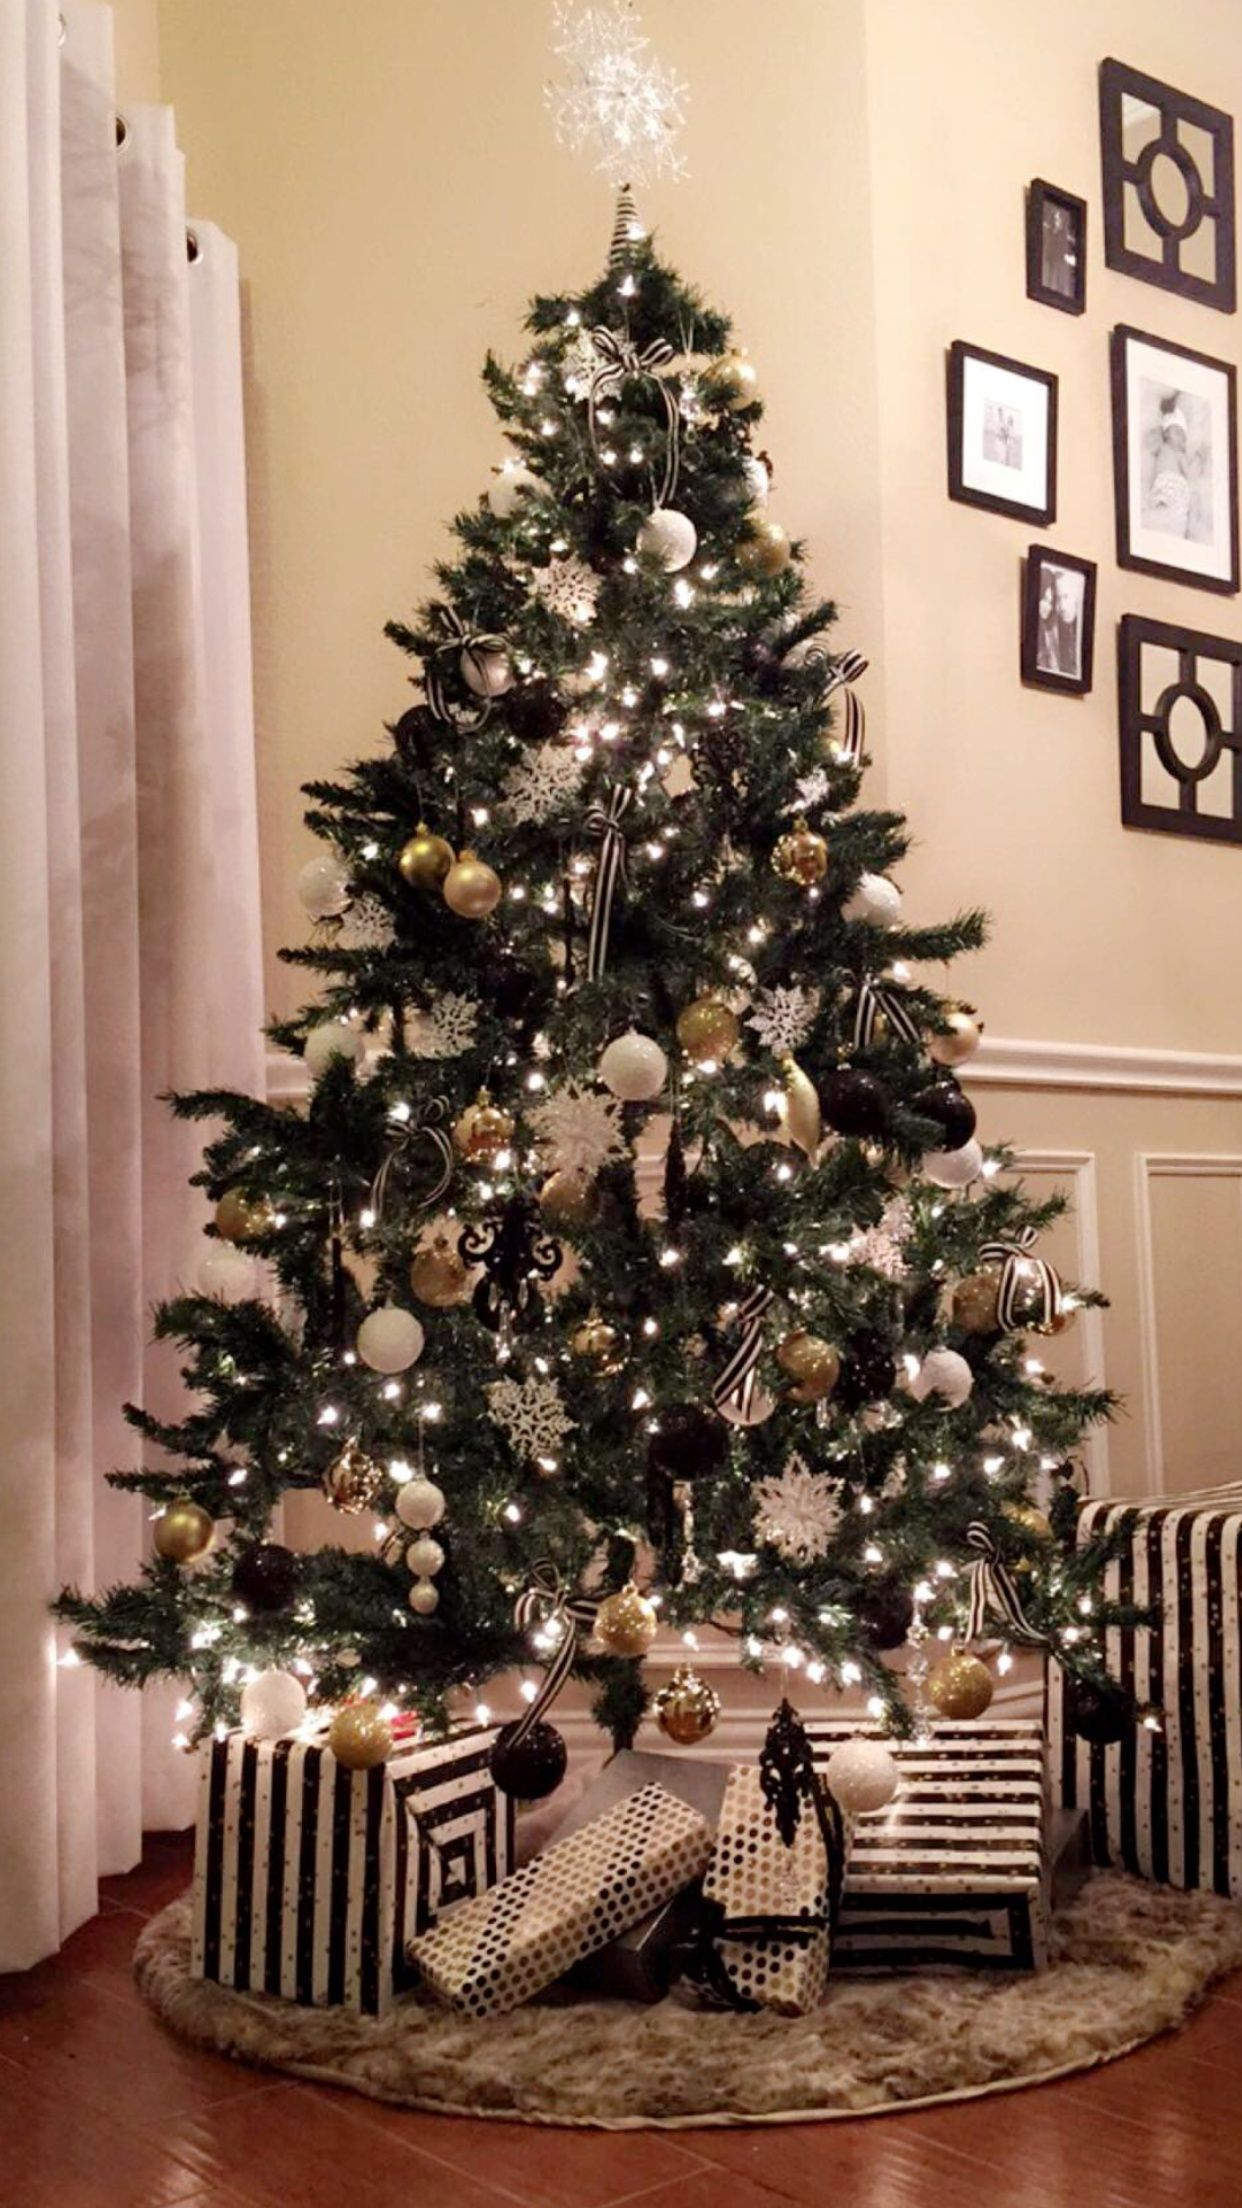 22+ Beautiful Black And Gold Christmas Decor Ideas #kerstboomversieringen2019